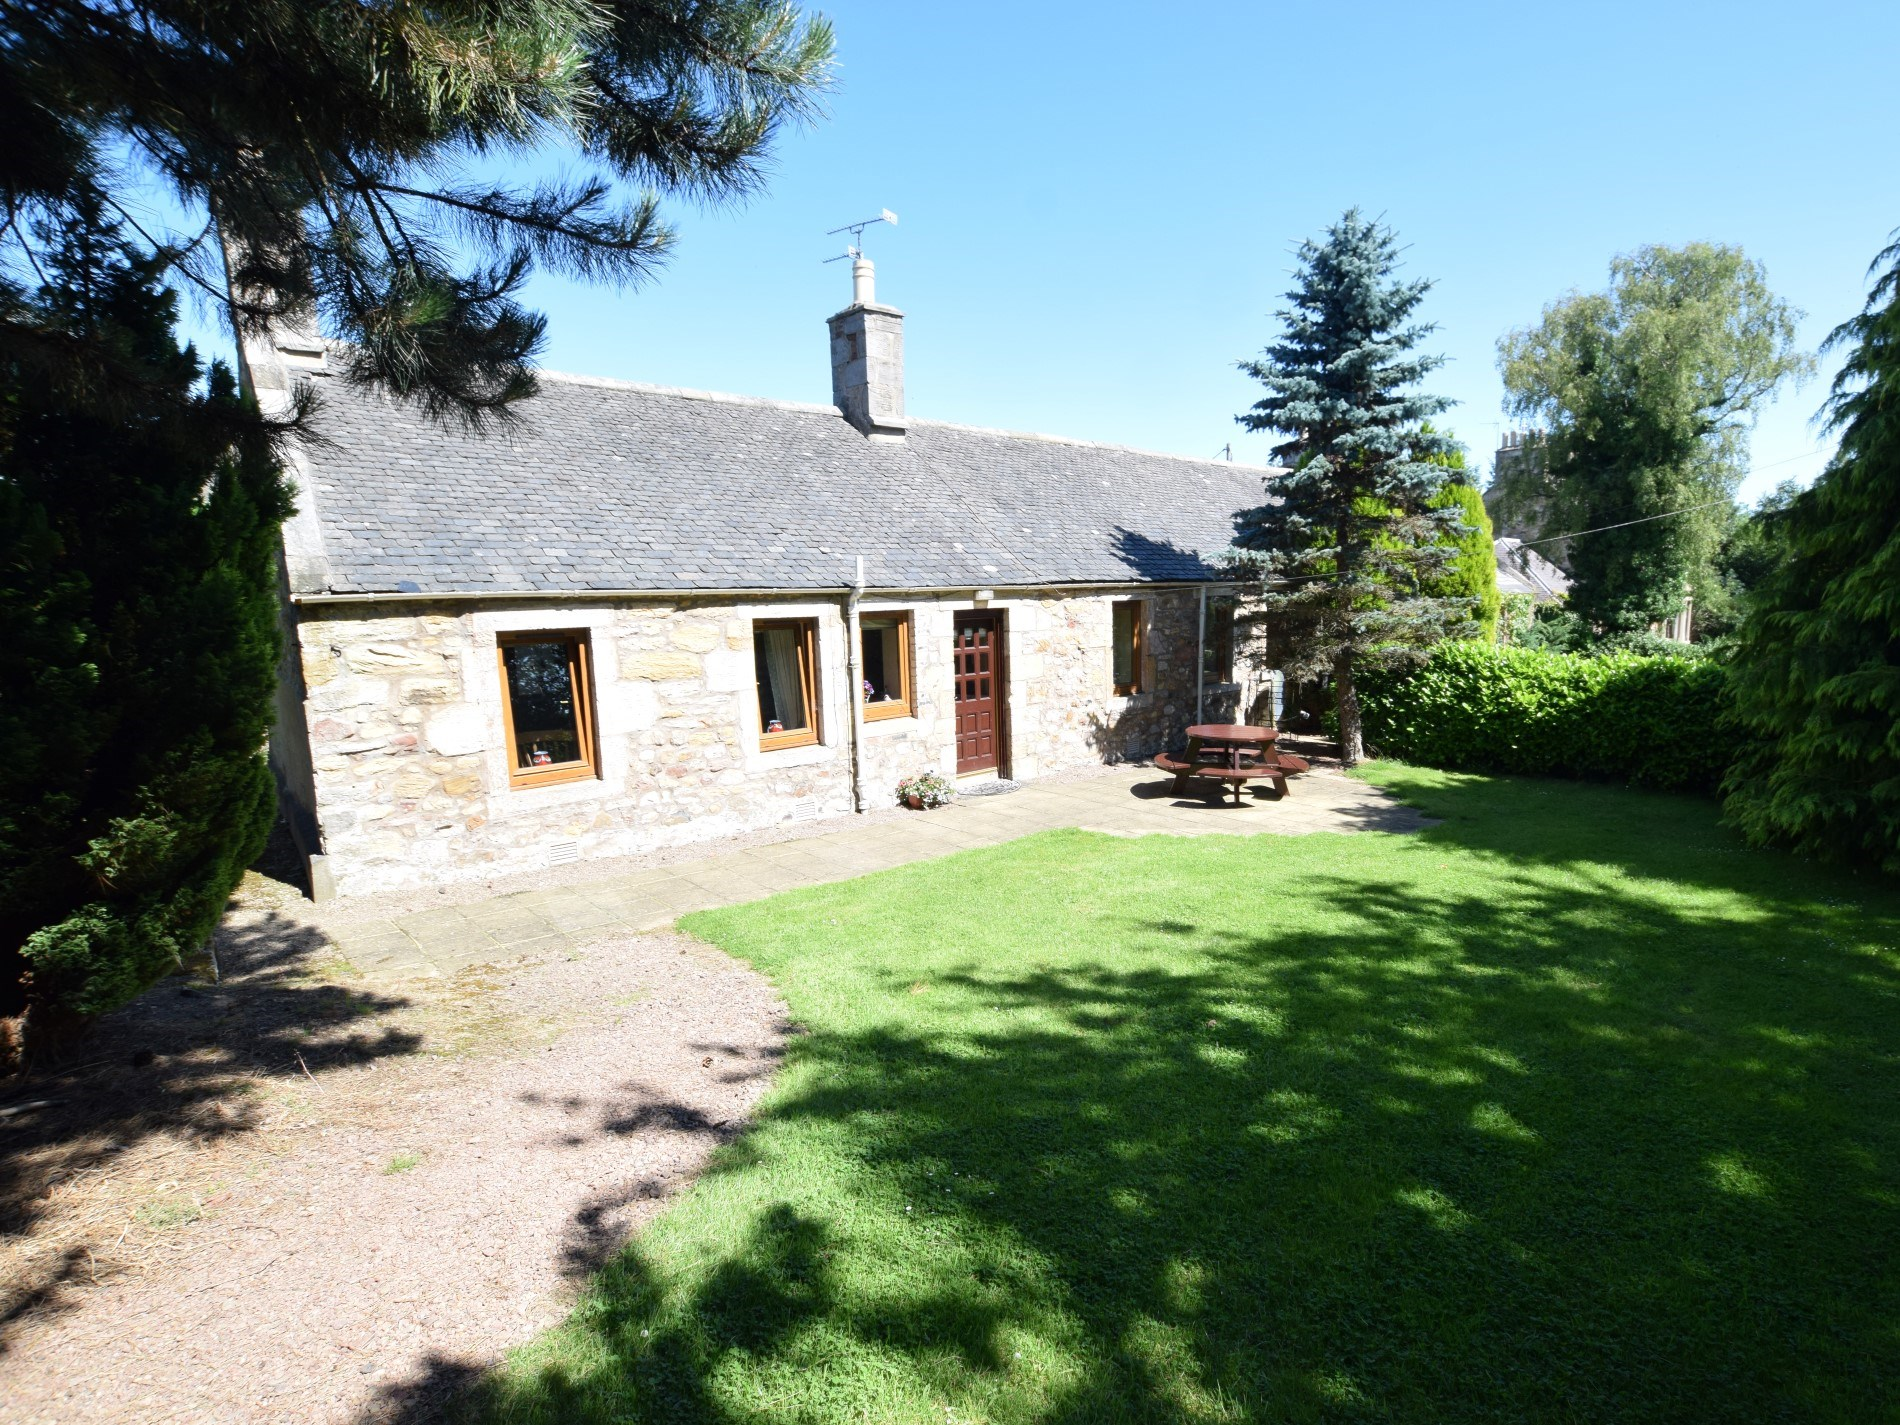 2 Bedroom Cottage in Edinburgh and Lothians, Perthshire, Angus and Fife